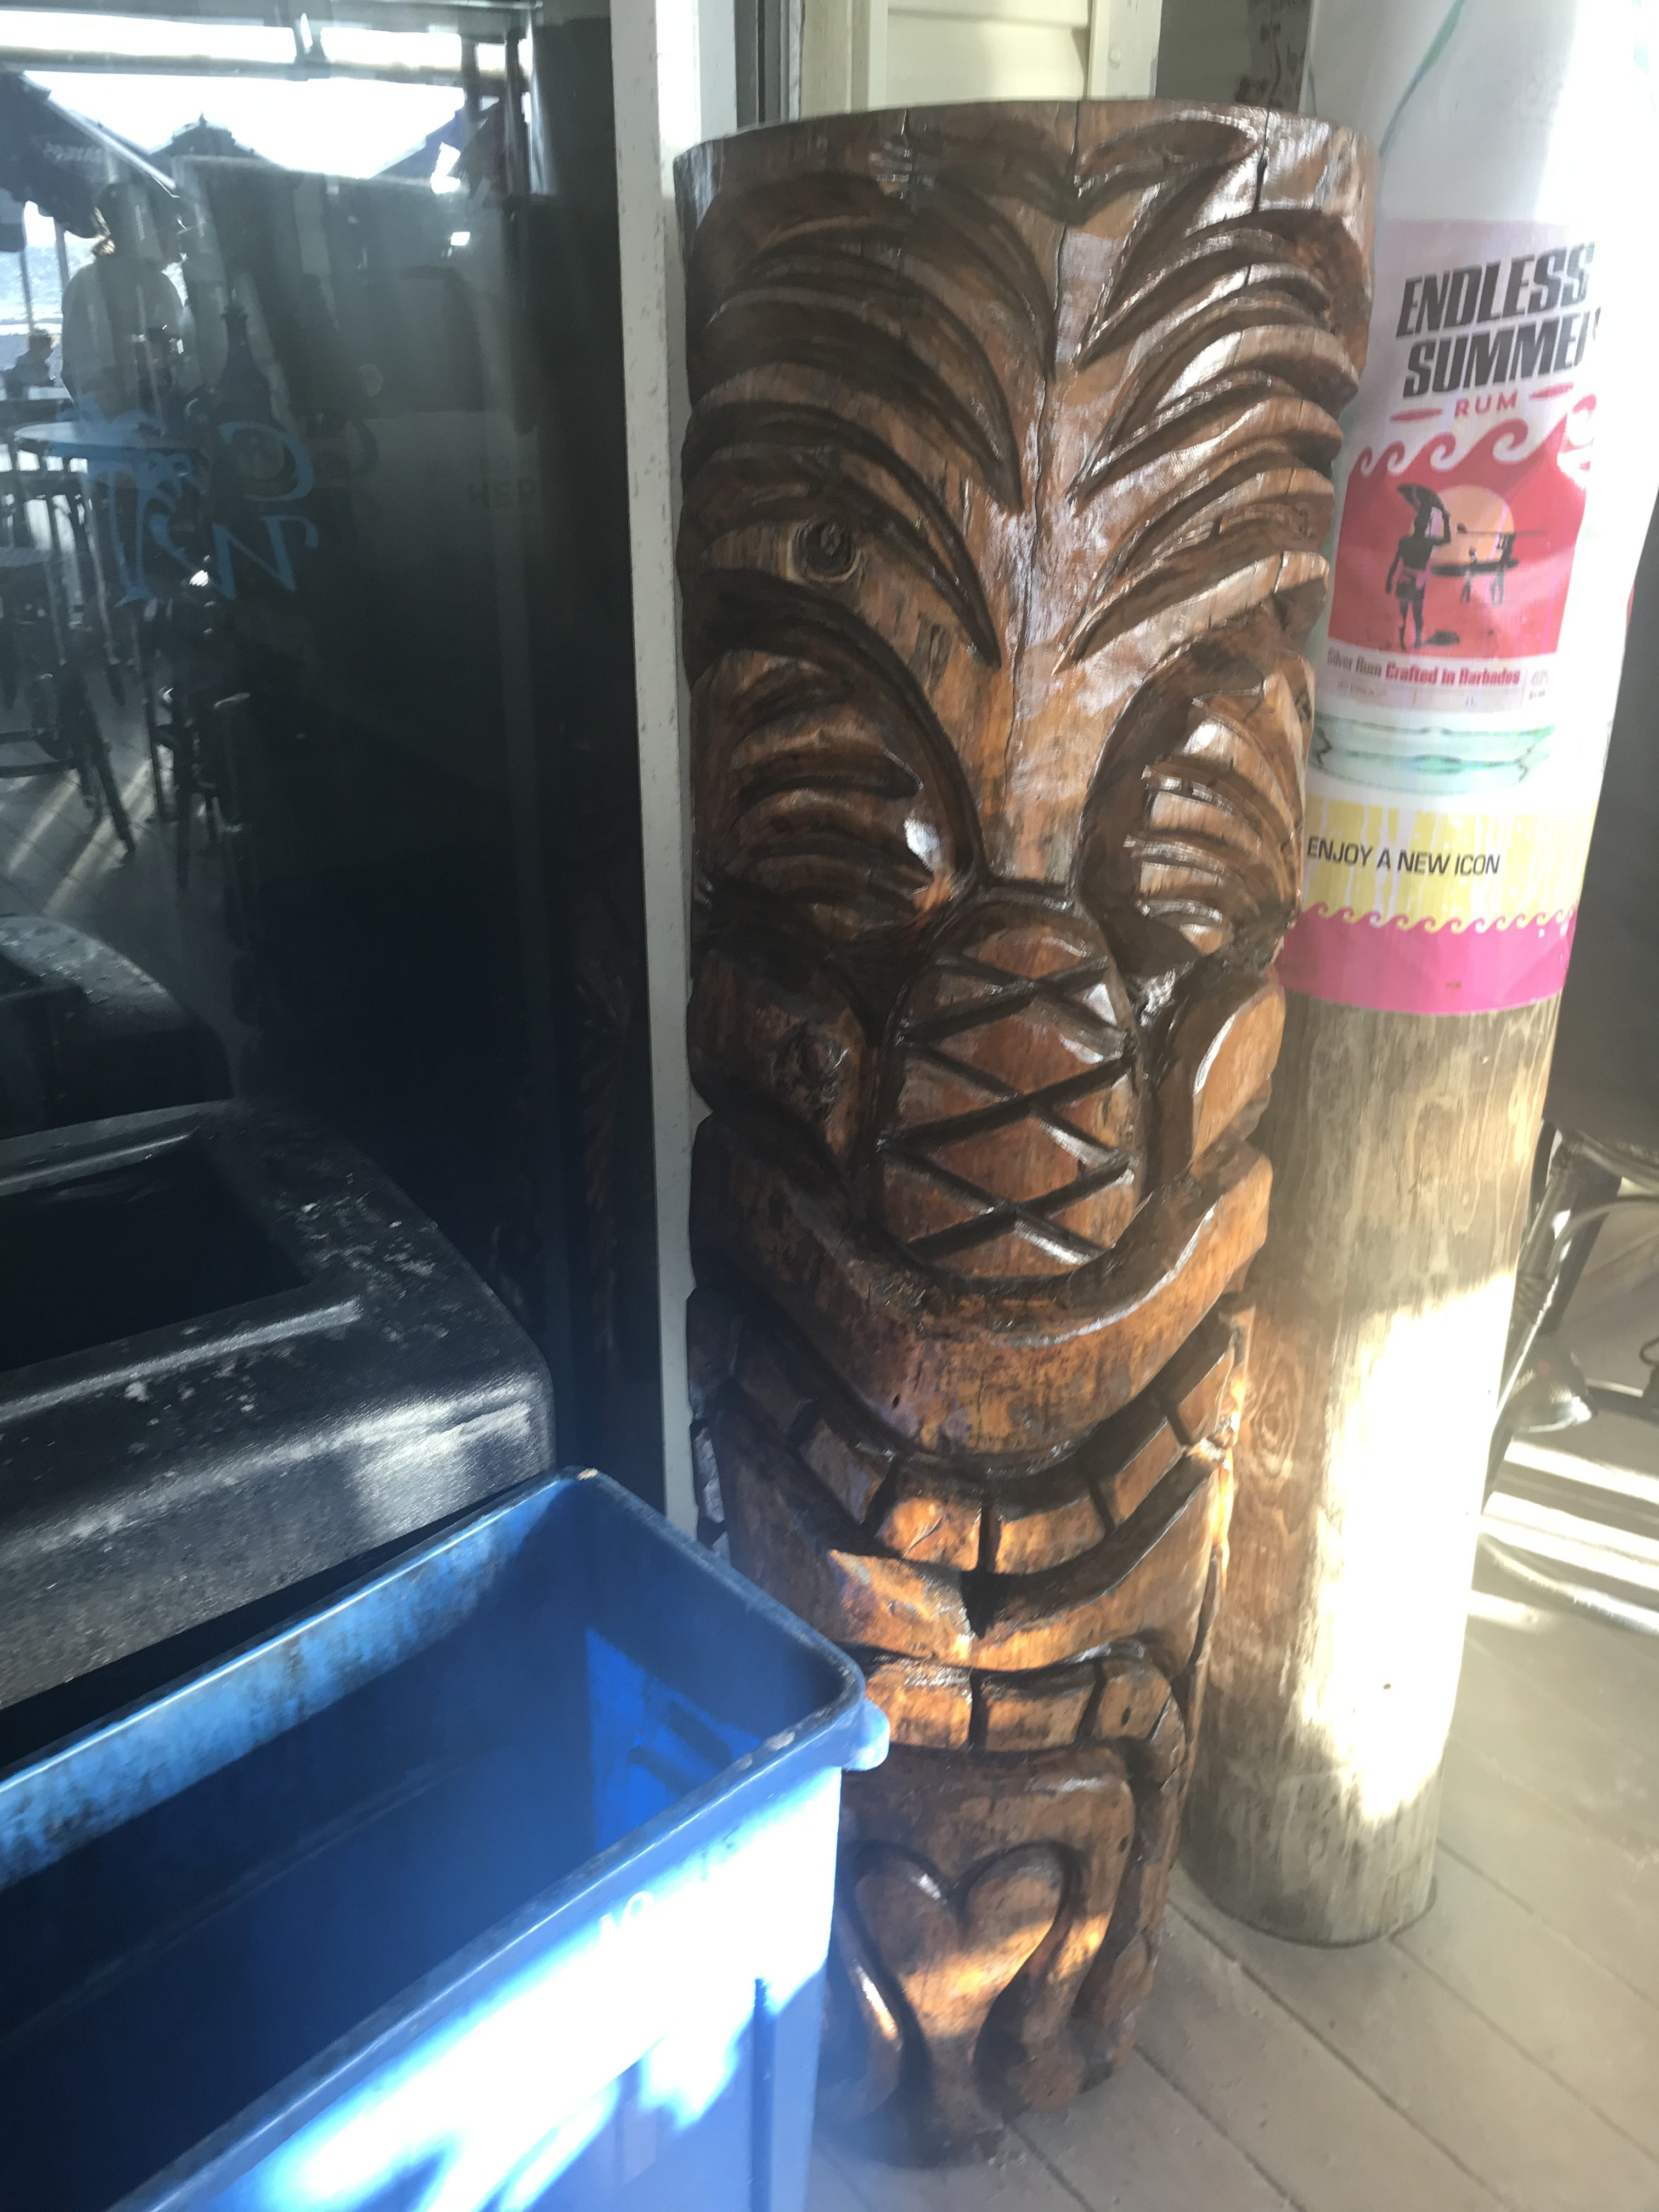 tiki from caddys